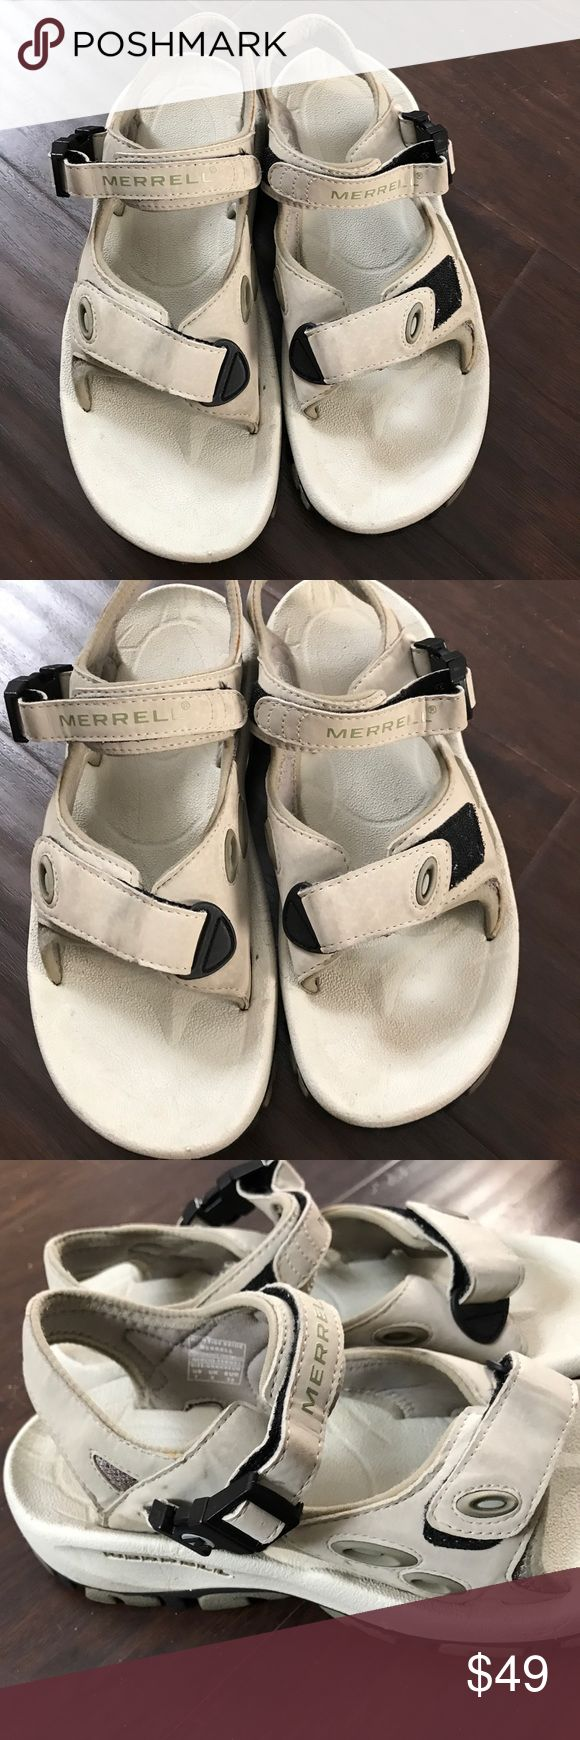 Merrell Sandals Size 7 Excellent condition just has minor superficial dirt that can be wash. Merrell Shoes Sandals